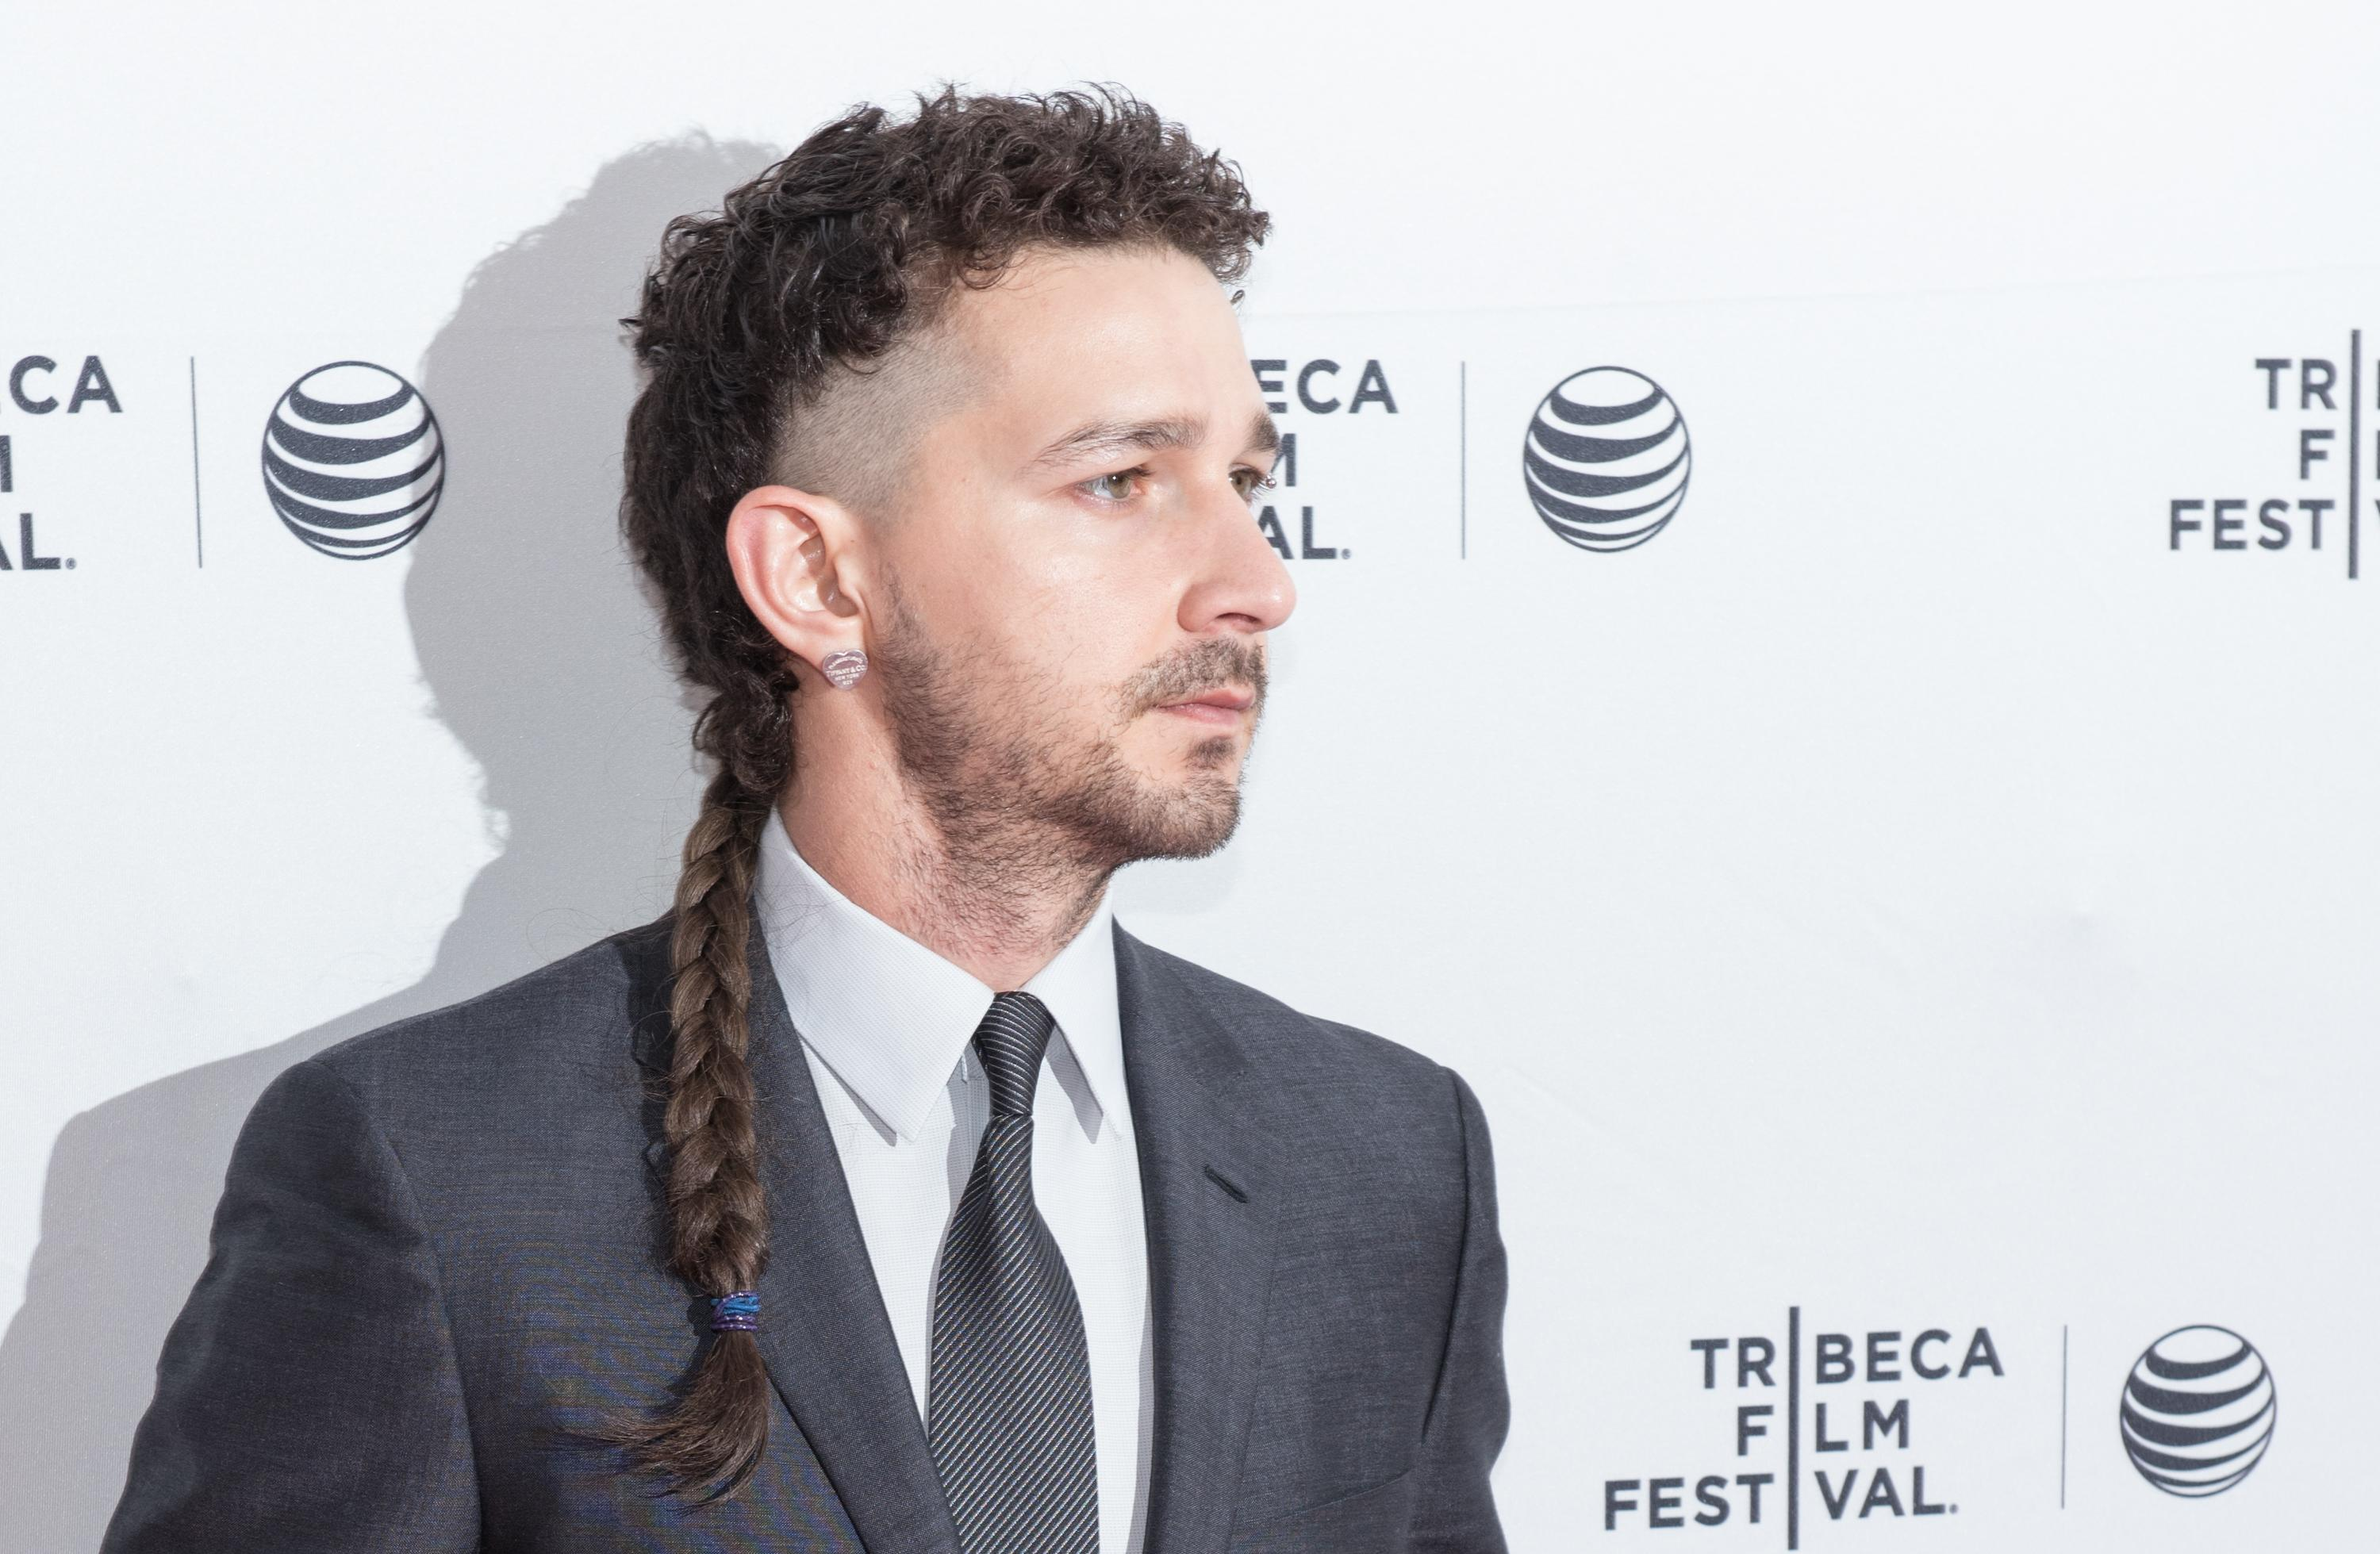 Shia LaBeouf Shows Off New Doc At Tribeca, But His Outspoken Remarks Steal The Spotlight